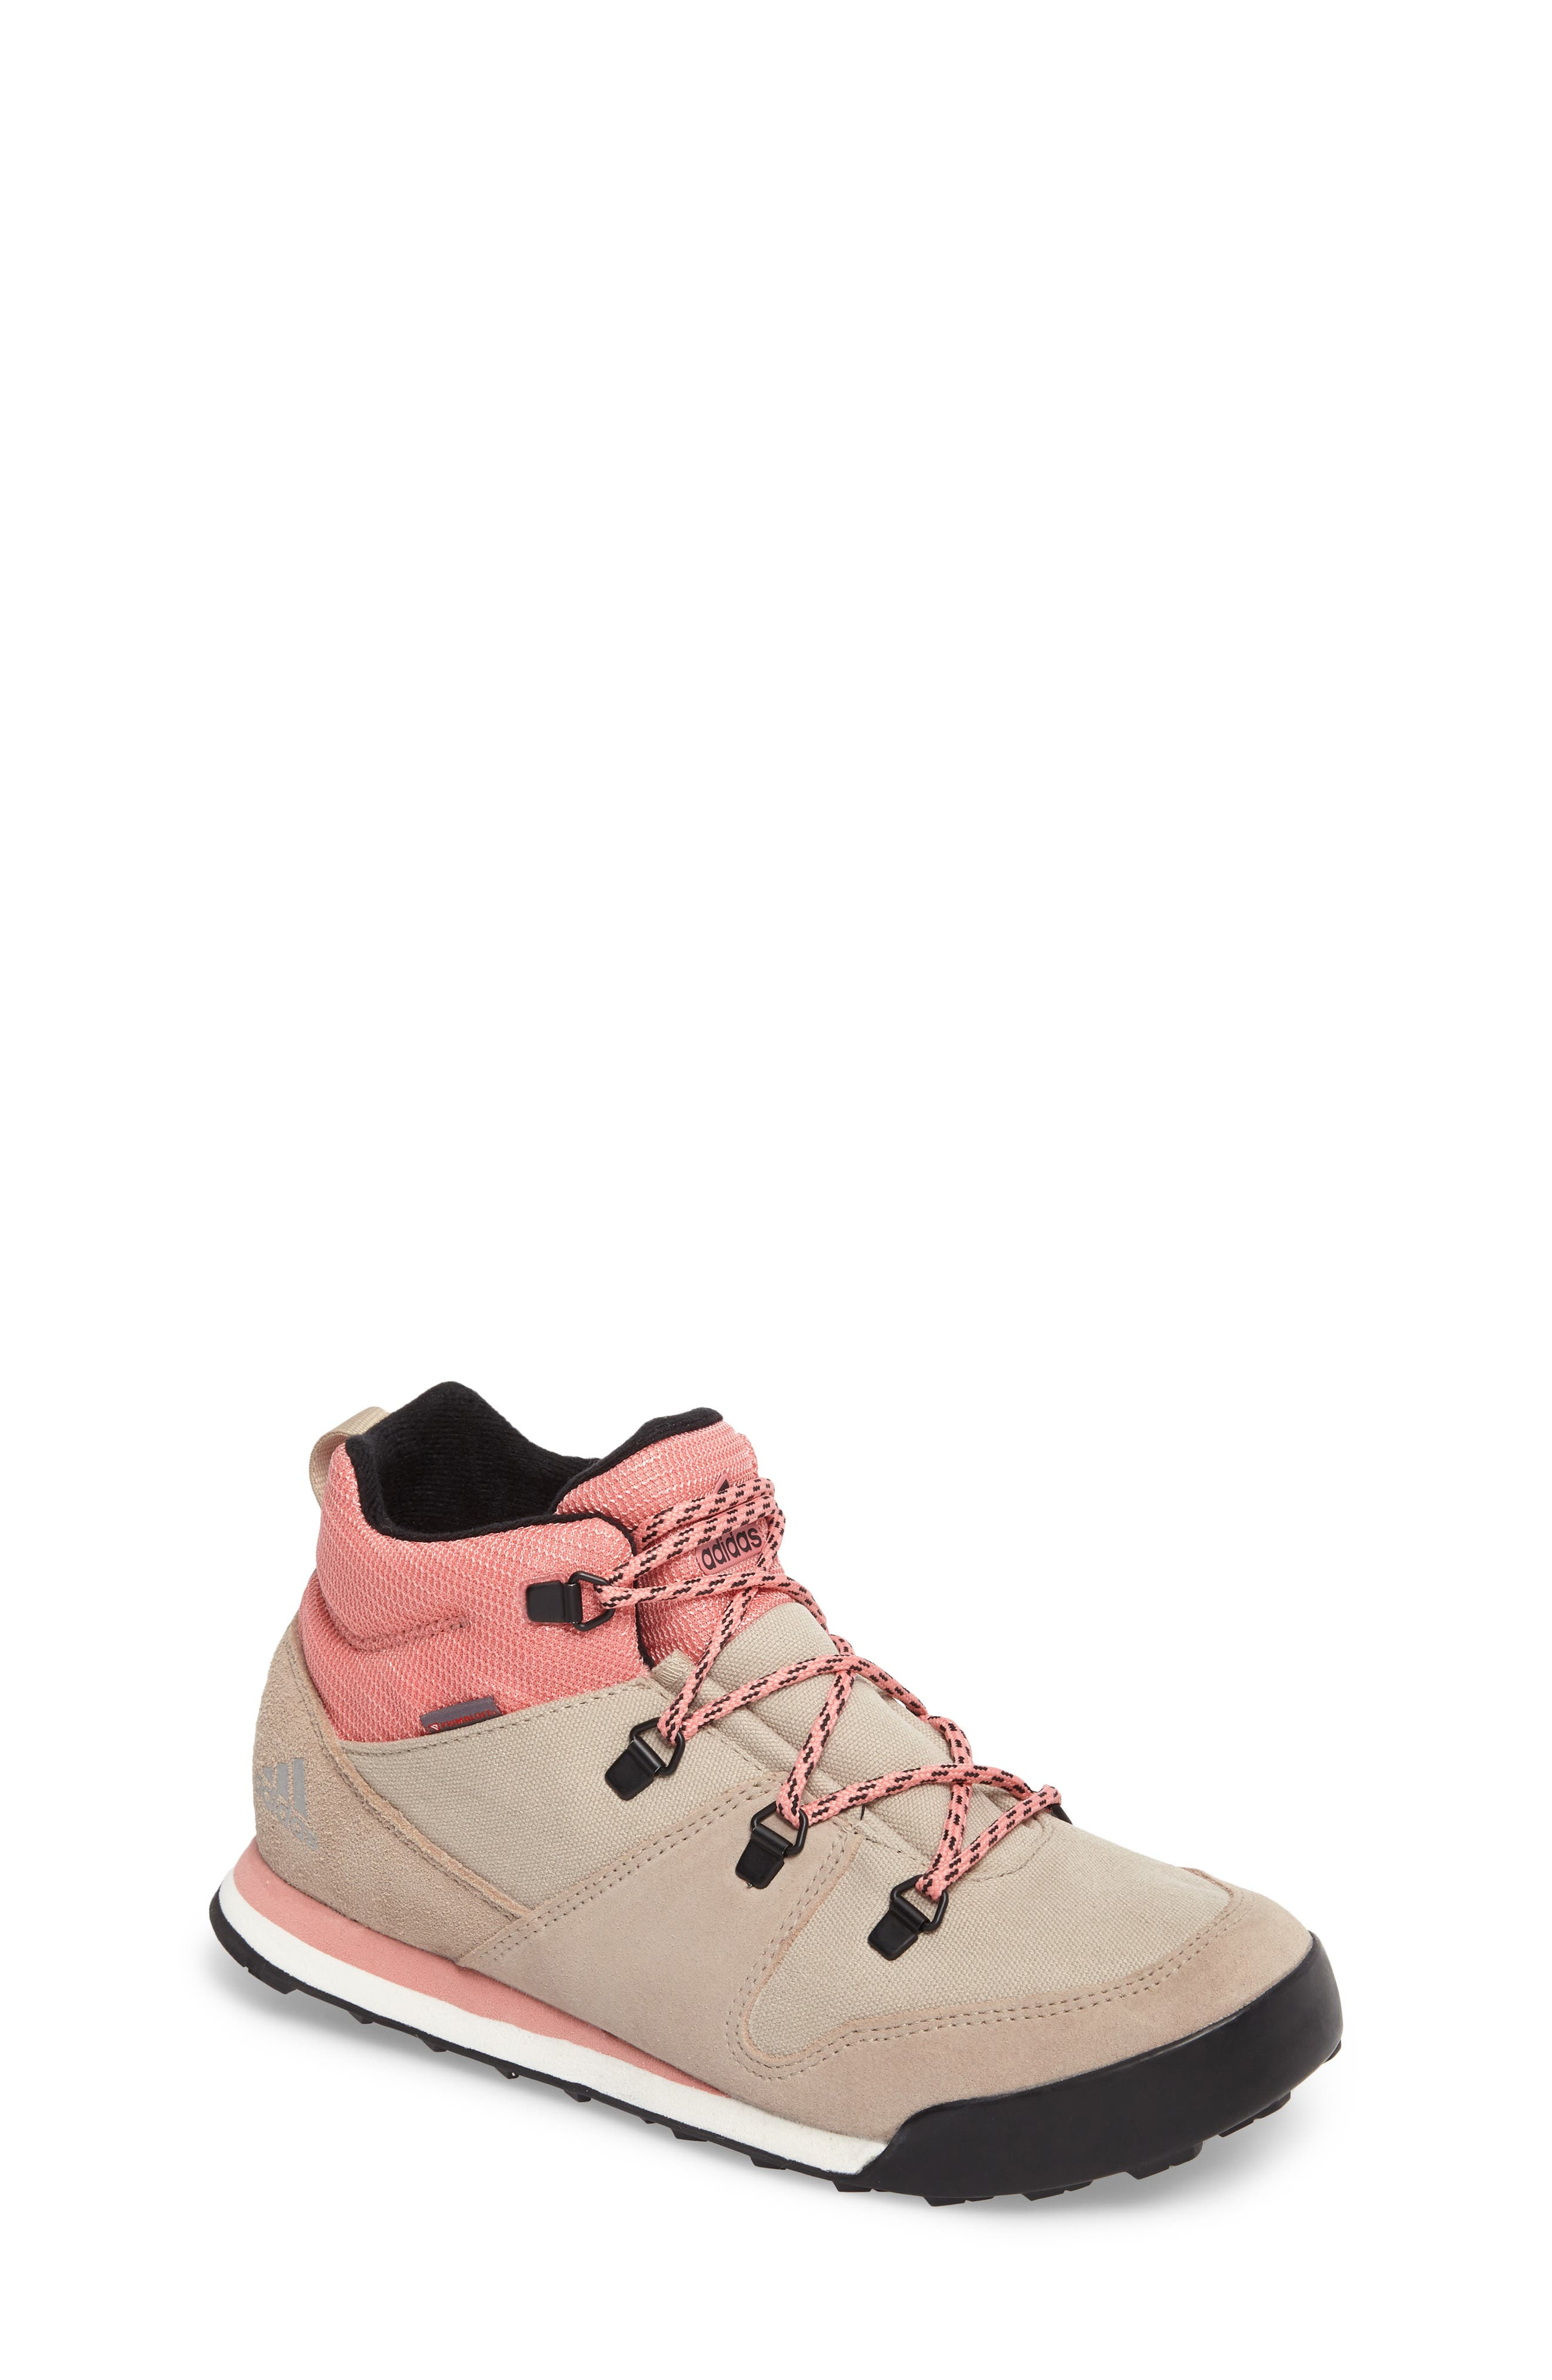 adidas Snowpitch Insulated Sneaker Boot (Toddler, Little Kid & Big Kid)